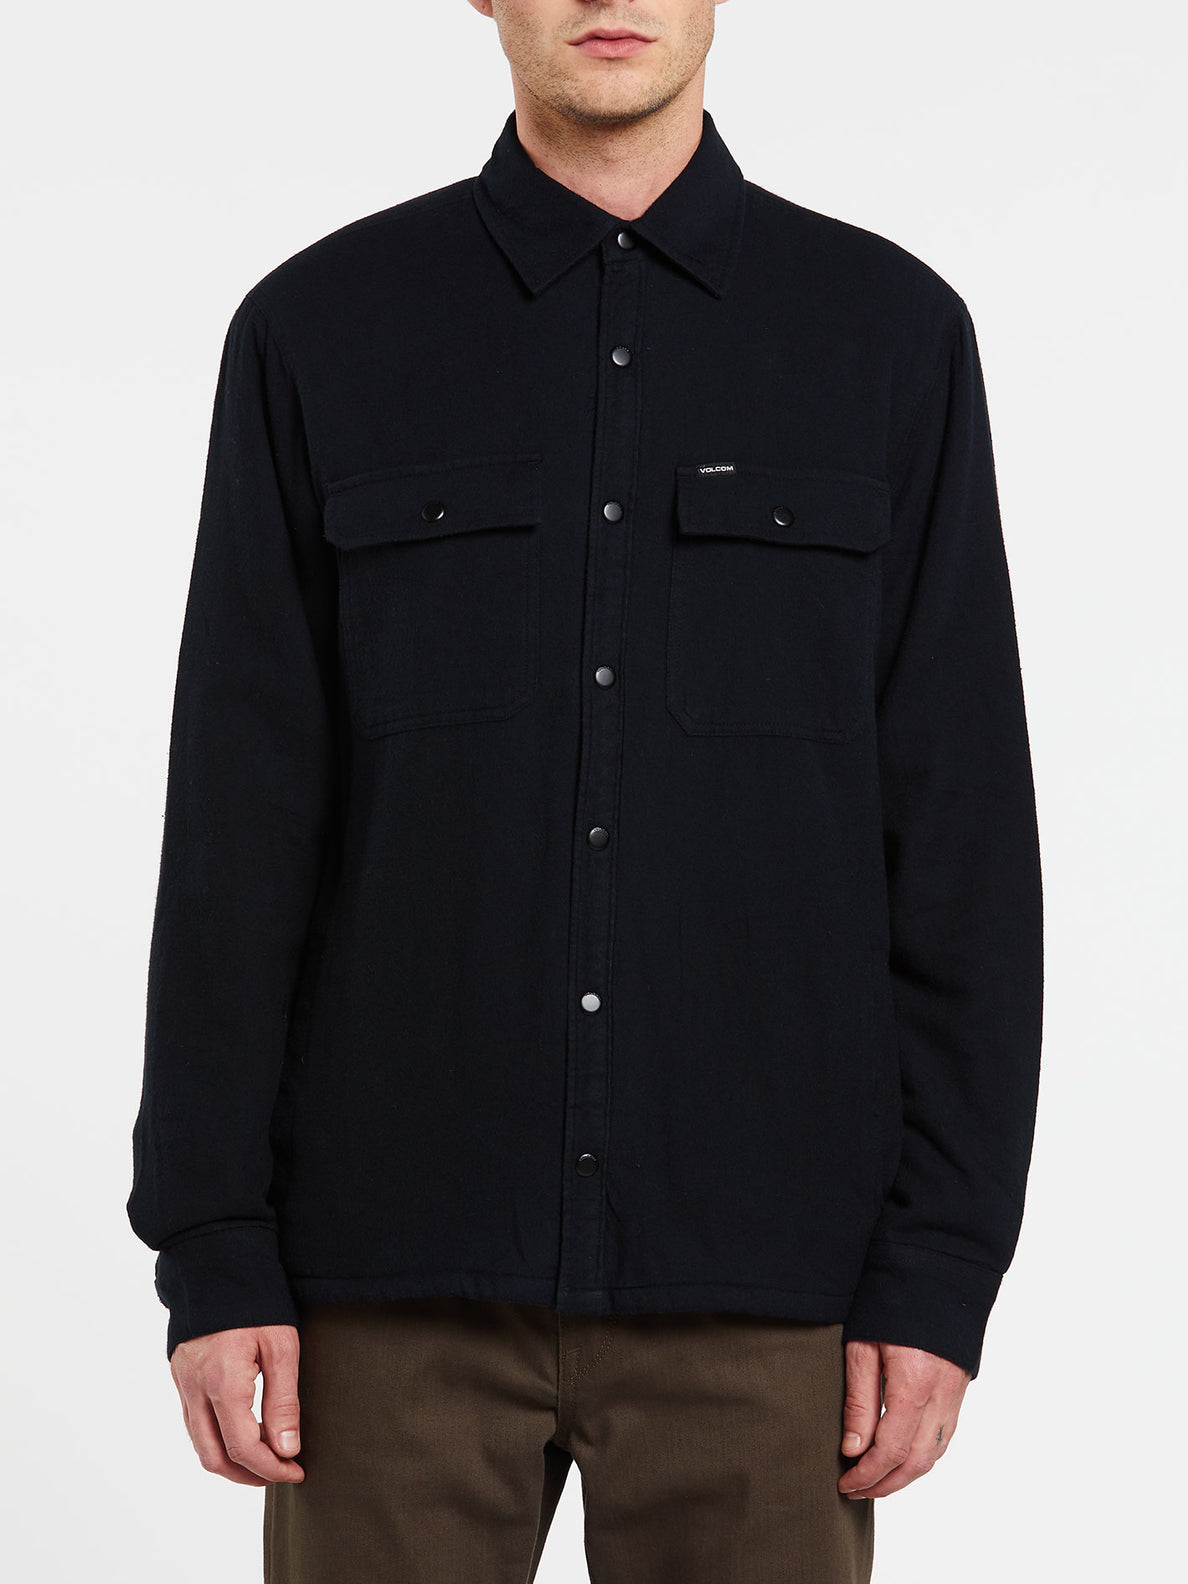 Larkin Jacket - Black (A1632002_BLK) [F]